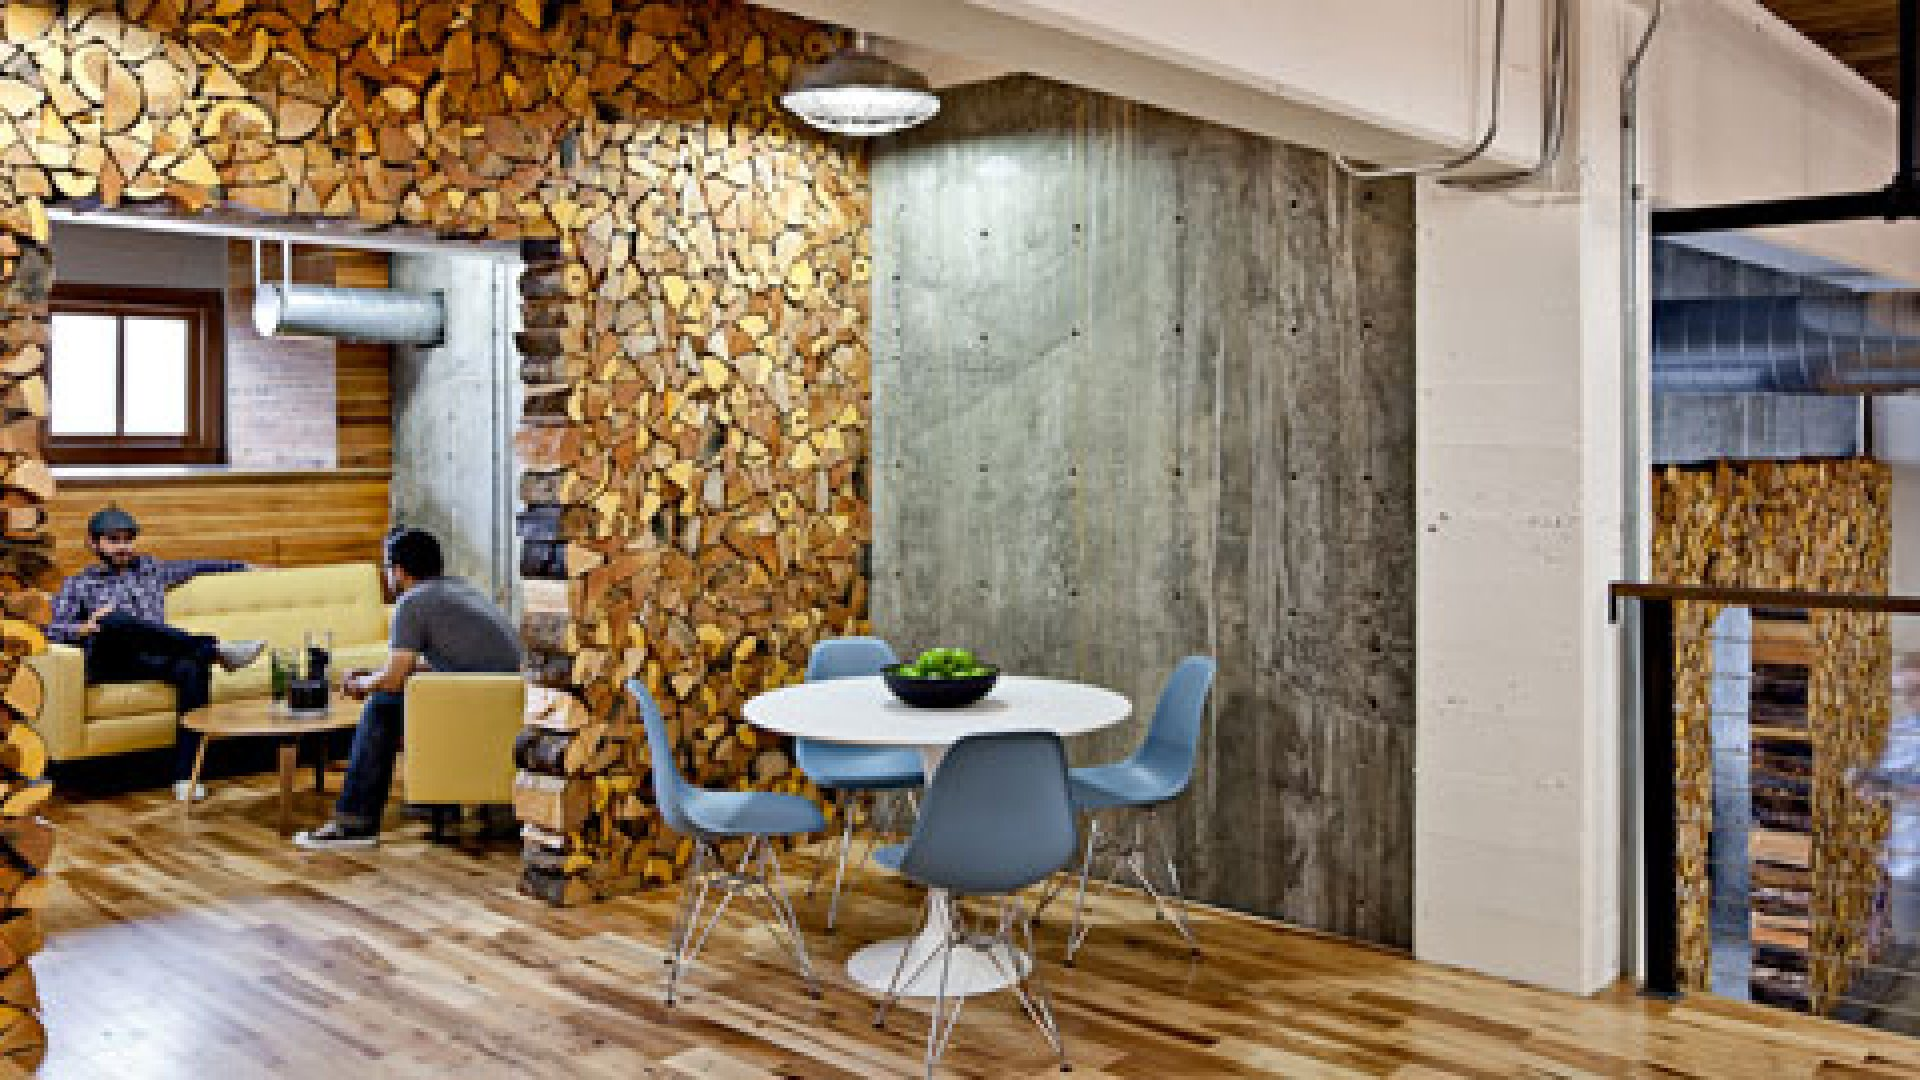 The Portland, Oregon, office of Parliament has more logs than a cabin. It also features plenty of raw concrete, huge open worktables, classic midcentury-modern chairs, and the odd bear rug for rustic charm.